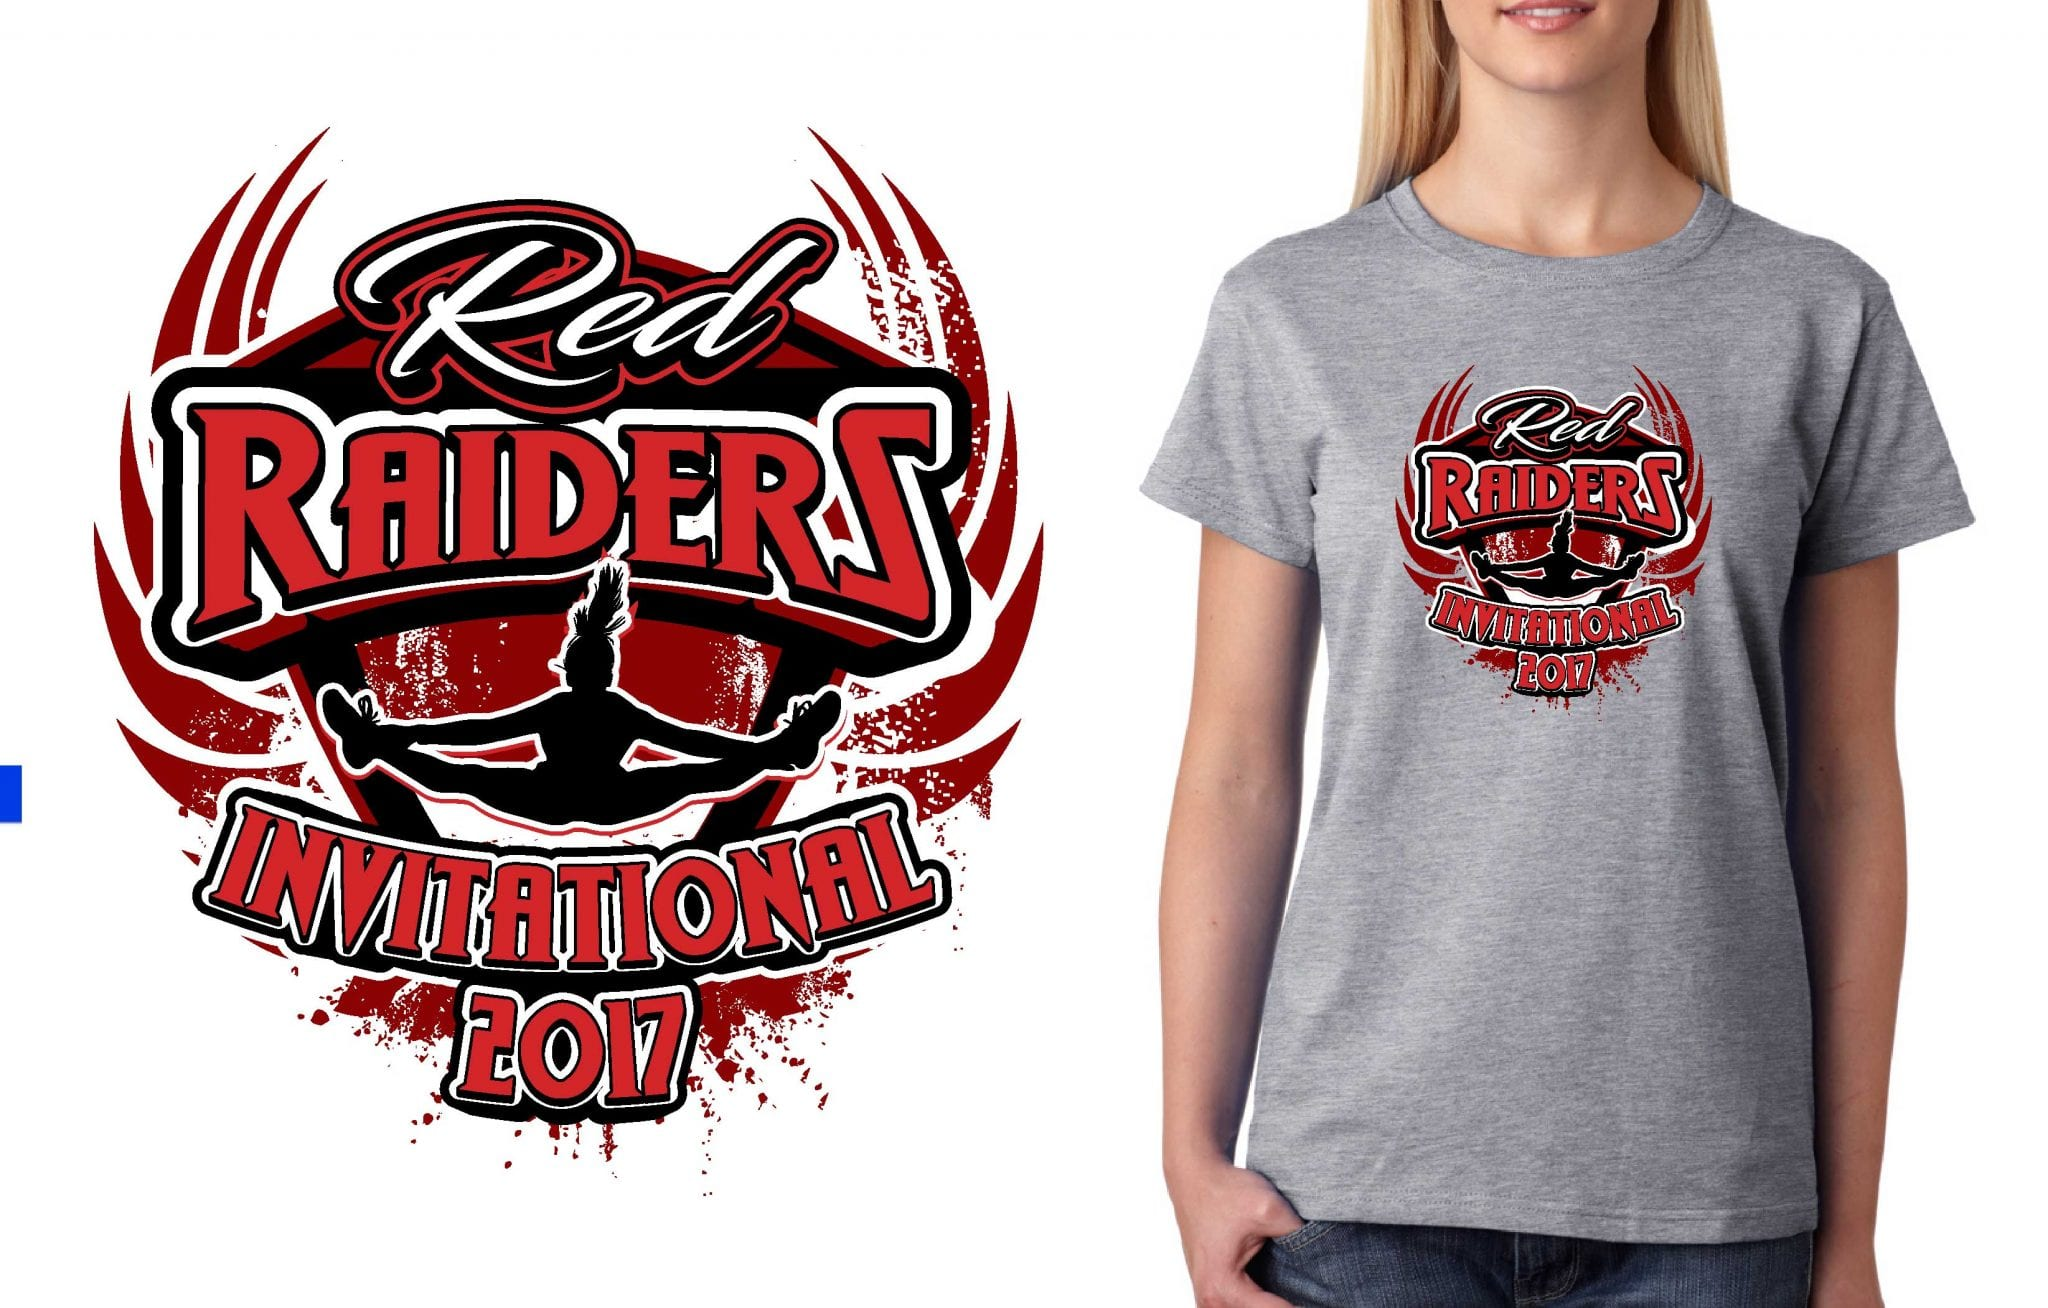 2017 Red Raider Invitational Patti vector logo design for cheer t-shirt UrArtStudio